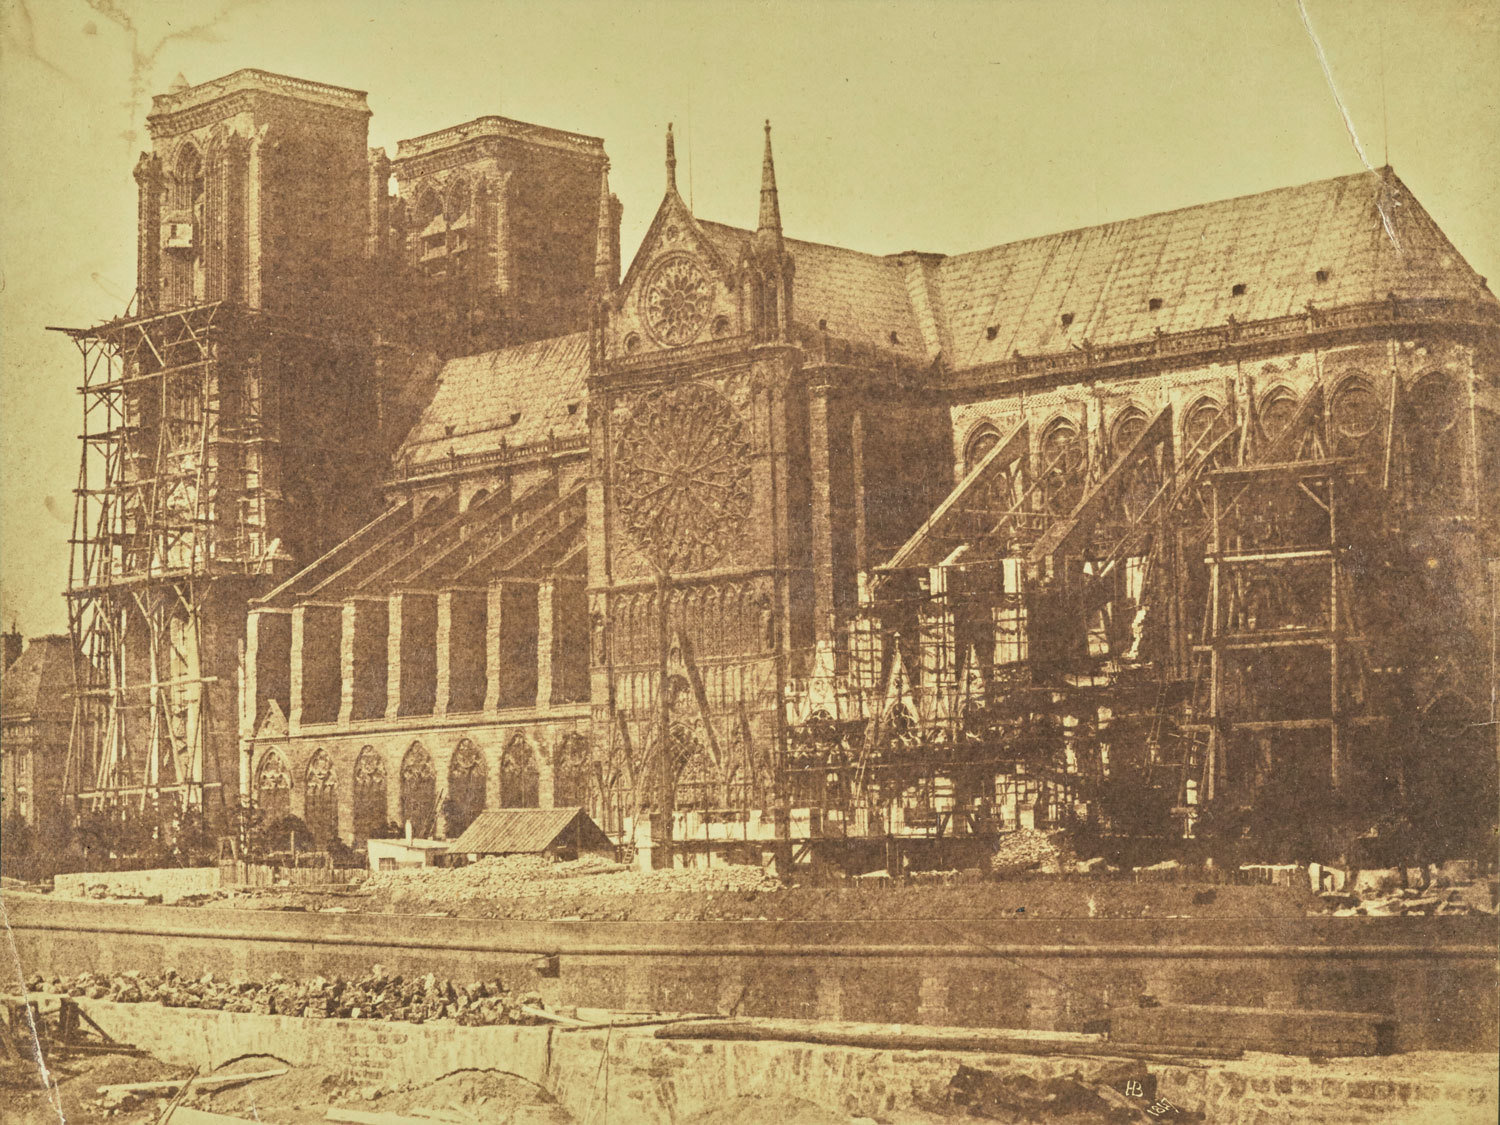 South side of Notre-Dame, Paris, during restoration, 1847 [Note the scaffolding has been set up along the side of one tower and below the flying buttresses], Hippolyte Bayard, The J. Paul Getty Museum, Public Domain Mark